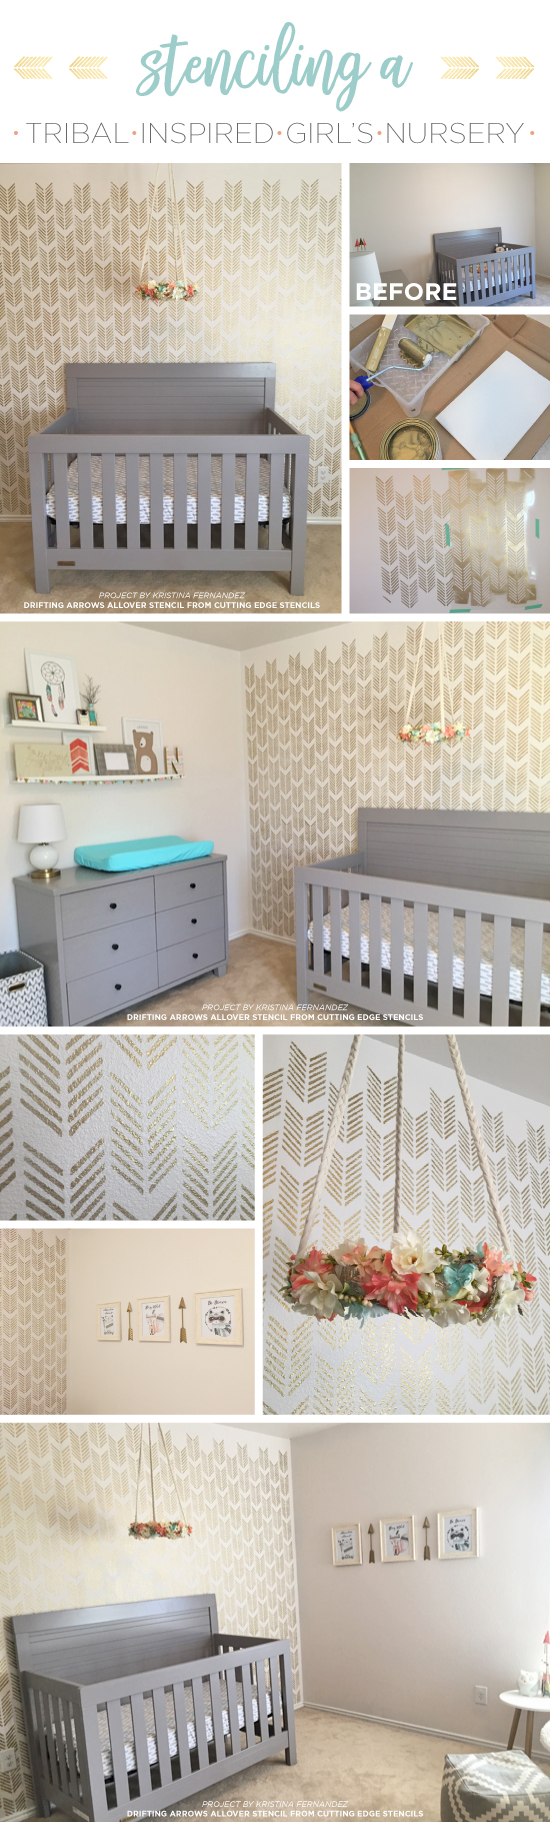 Cutting Edge Stencils shares a DIY stenciled girl's nursery accent wall using the Drifting Arrows stencil pattern in metallic gold. http://www.cuttingedgestencils.com/drifting-arrows-stencil-pattern-diy-decor.html